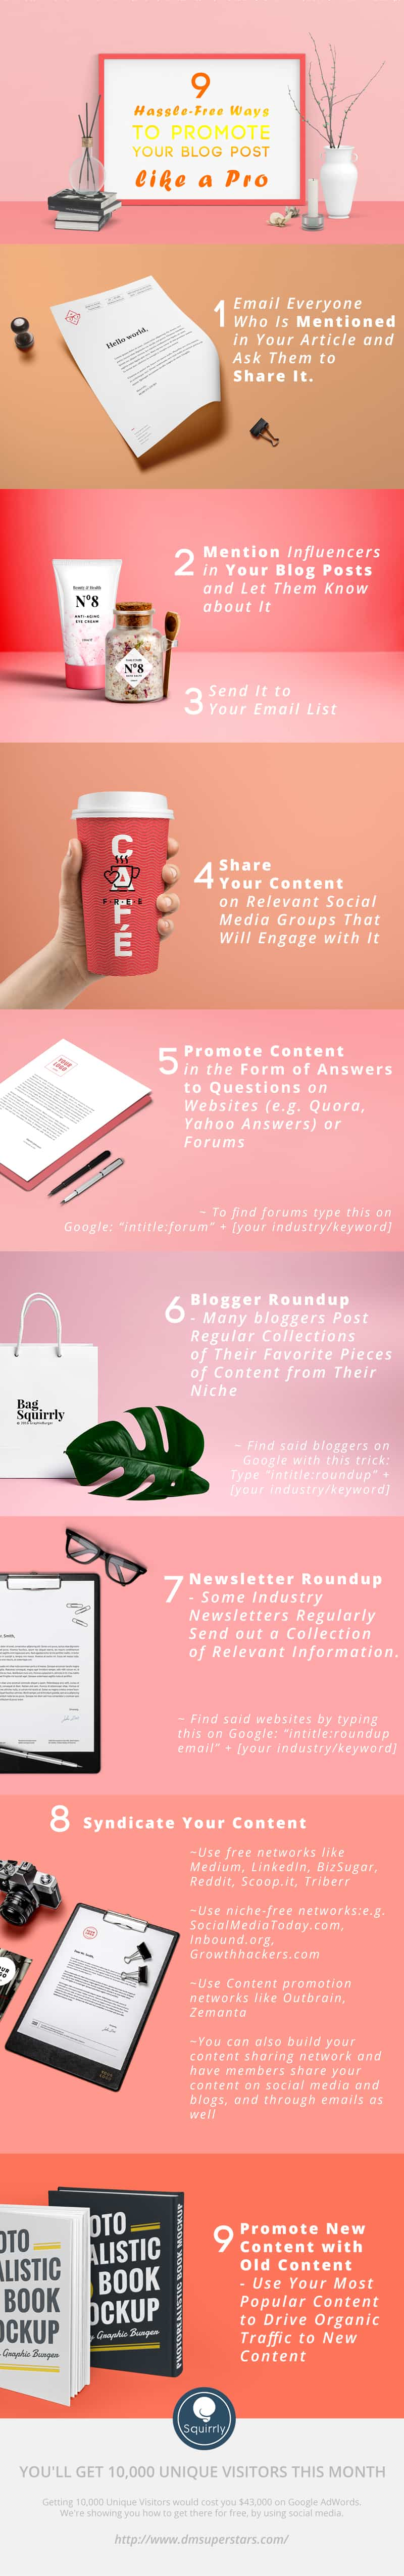 Free Ways to Promote Your Blog